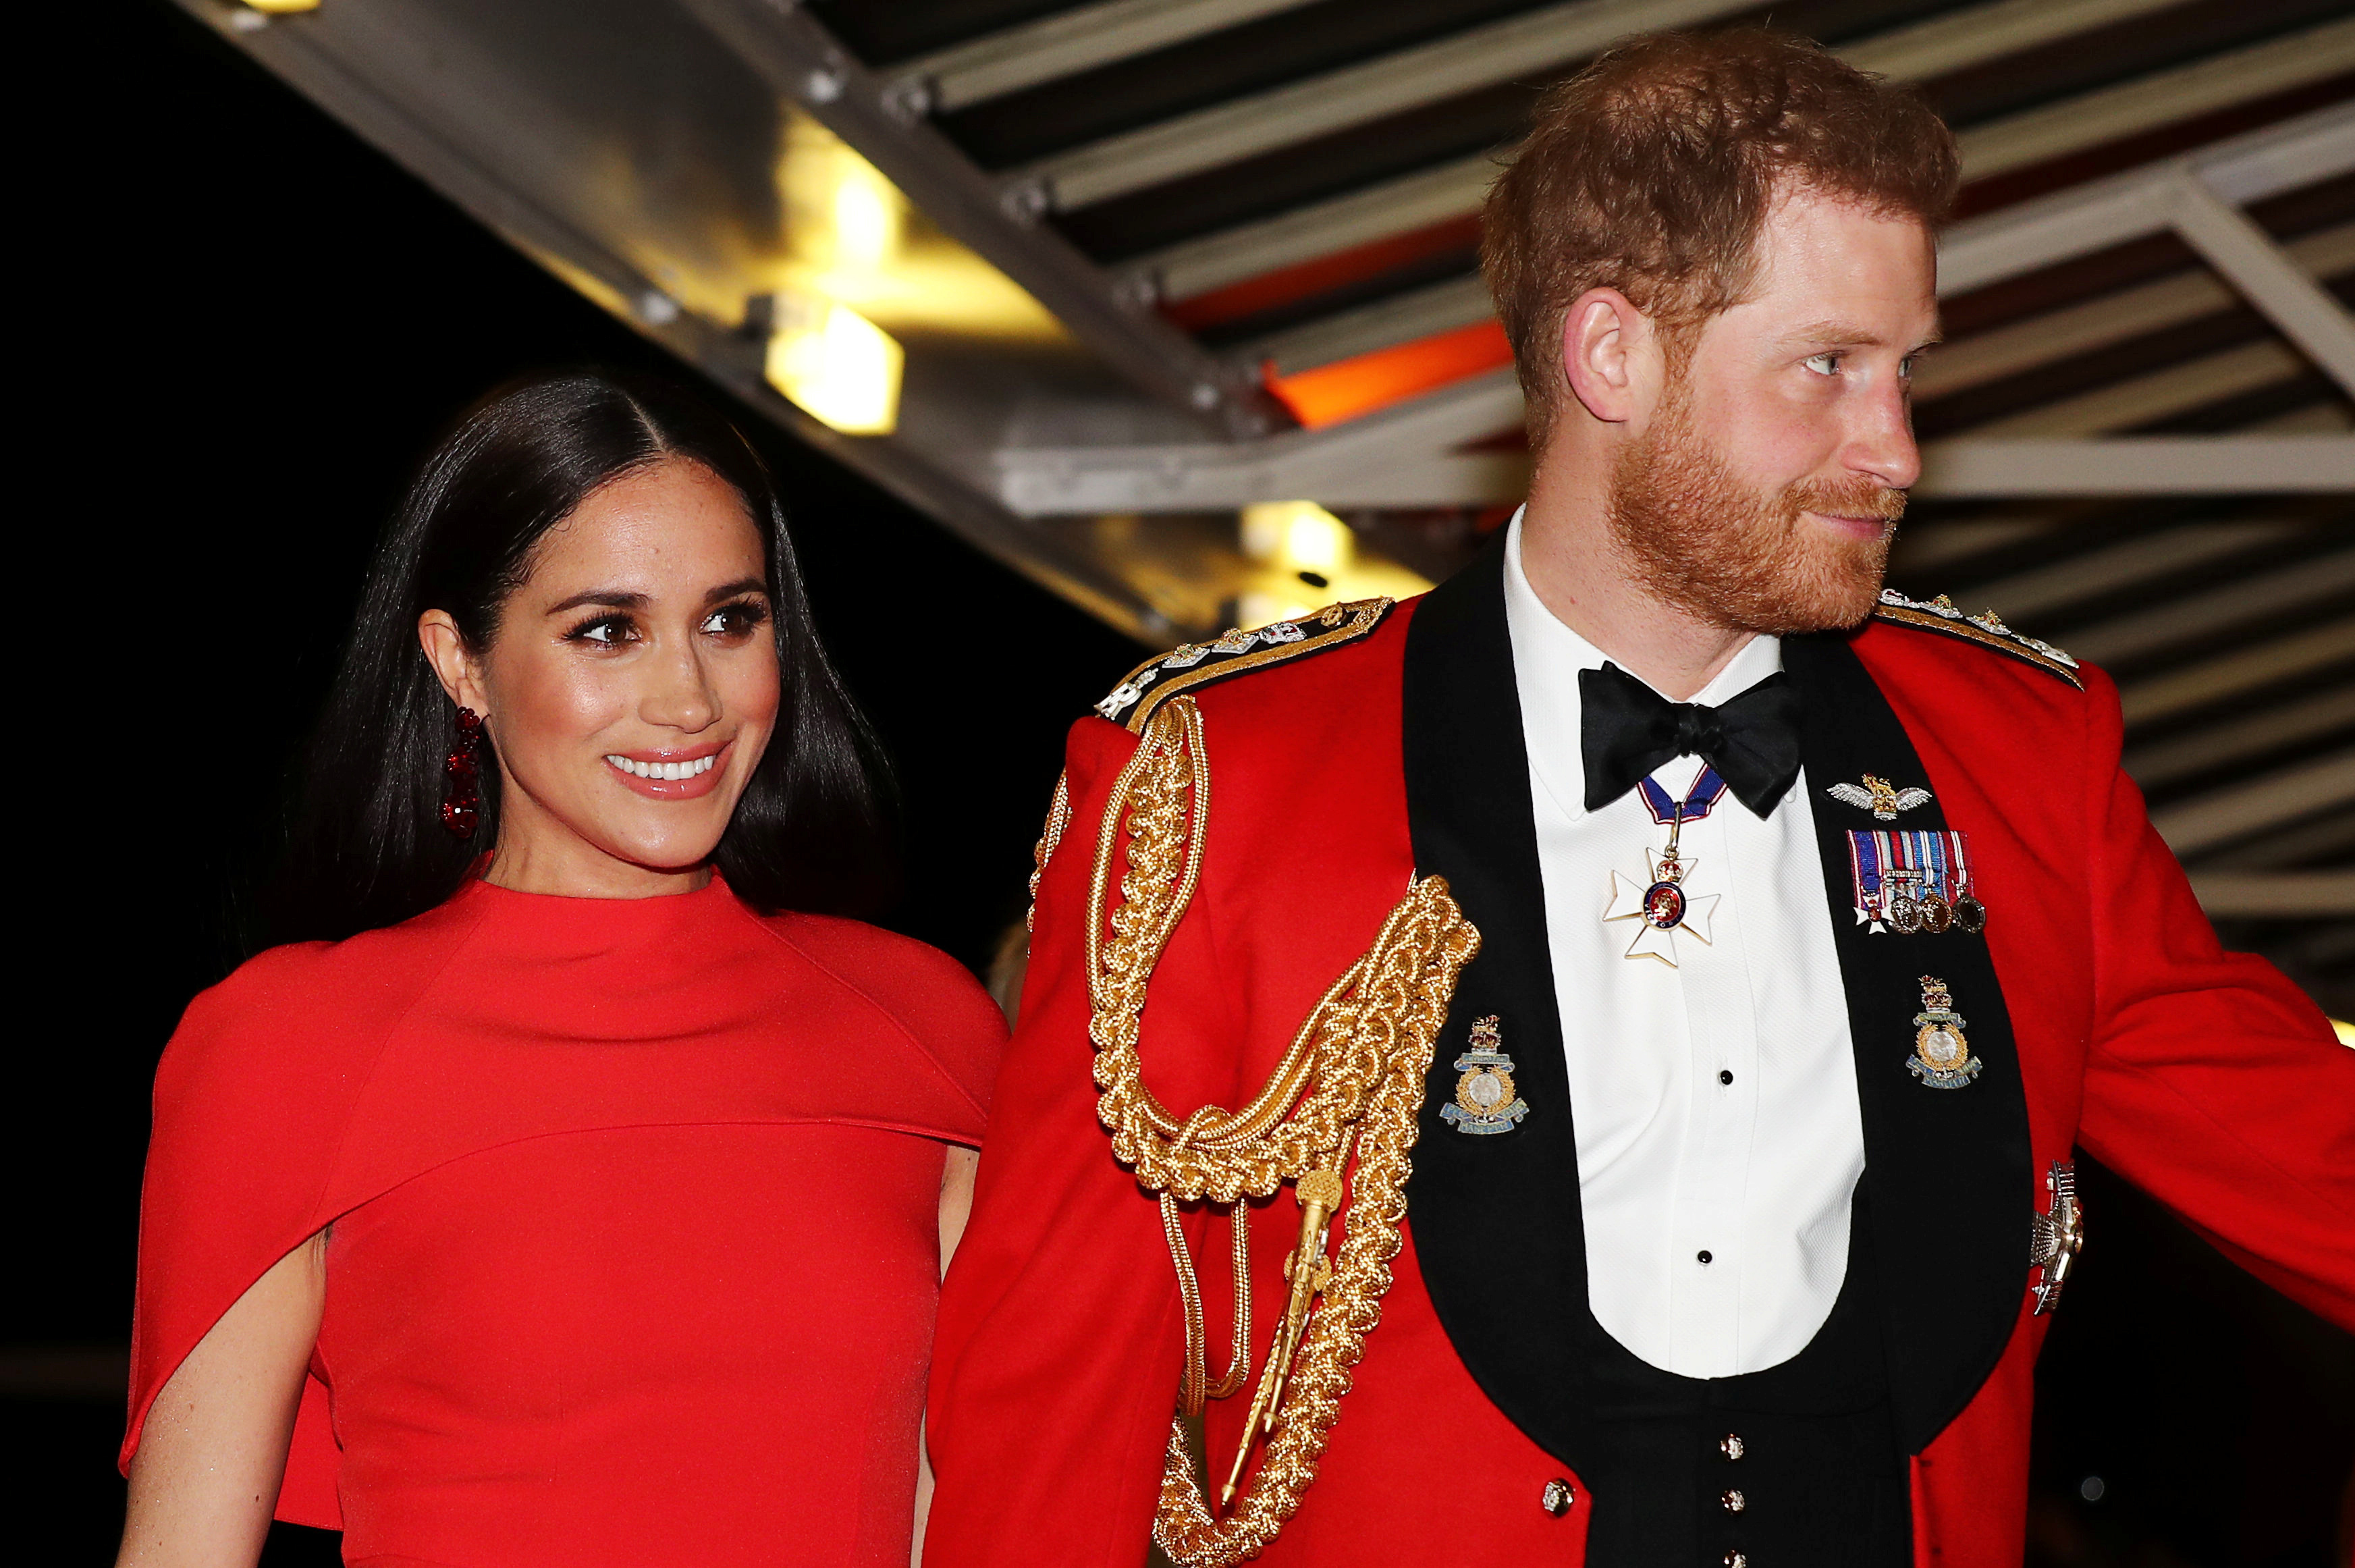 Meghan Markle and Prince Harry made an appearance at The Mountbatten Festival of Music in London on March 7, 2020. (Photo by SIMON DAWSON/POOL/AFP via Getty Images)